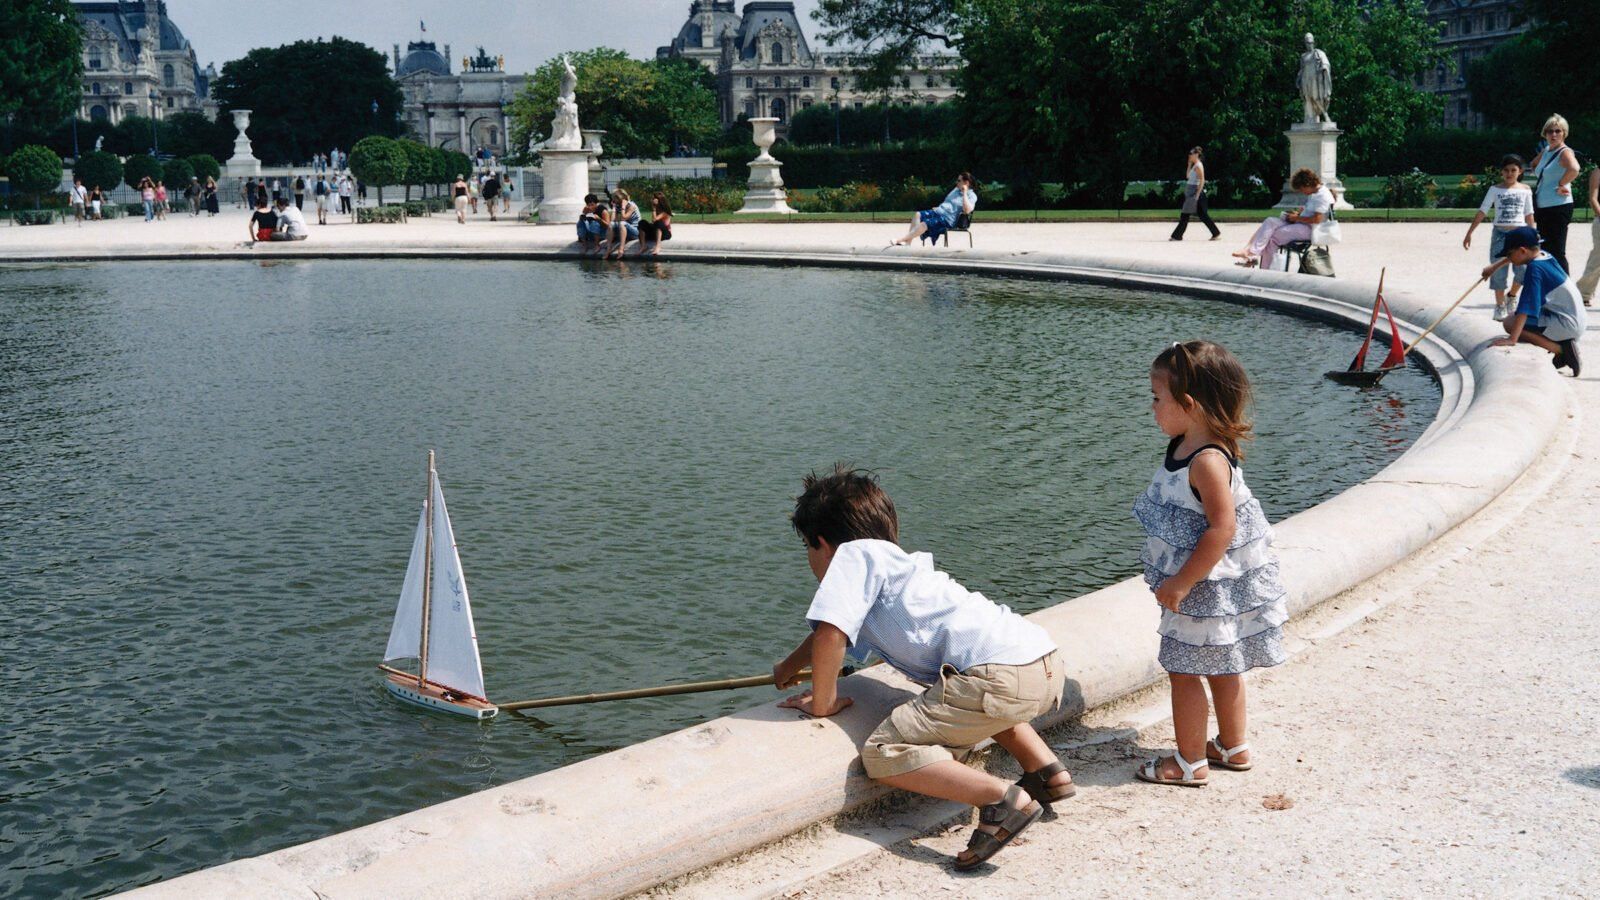 this image shows two children playing with boats on a fountain of the tuileries garden in Paris